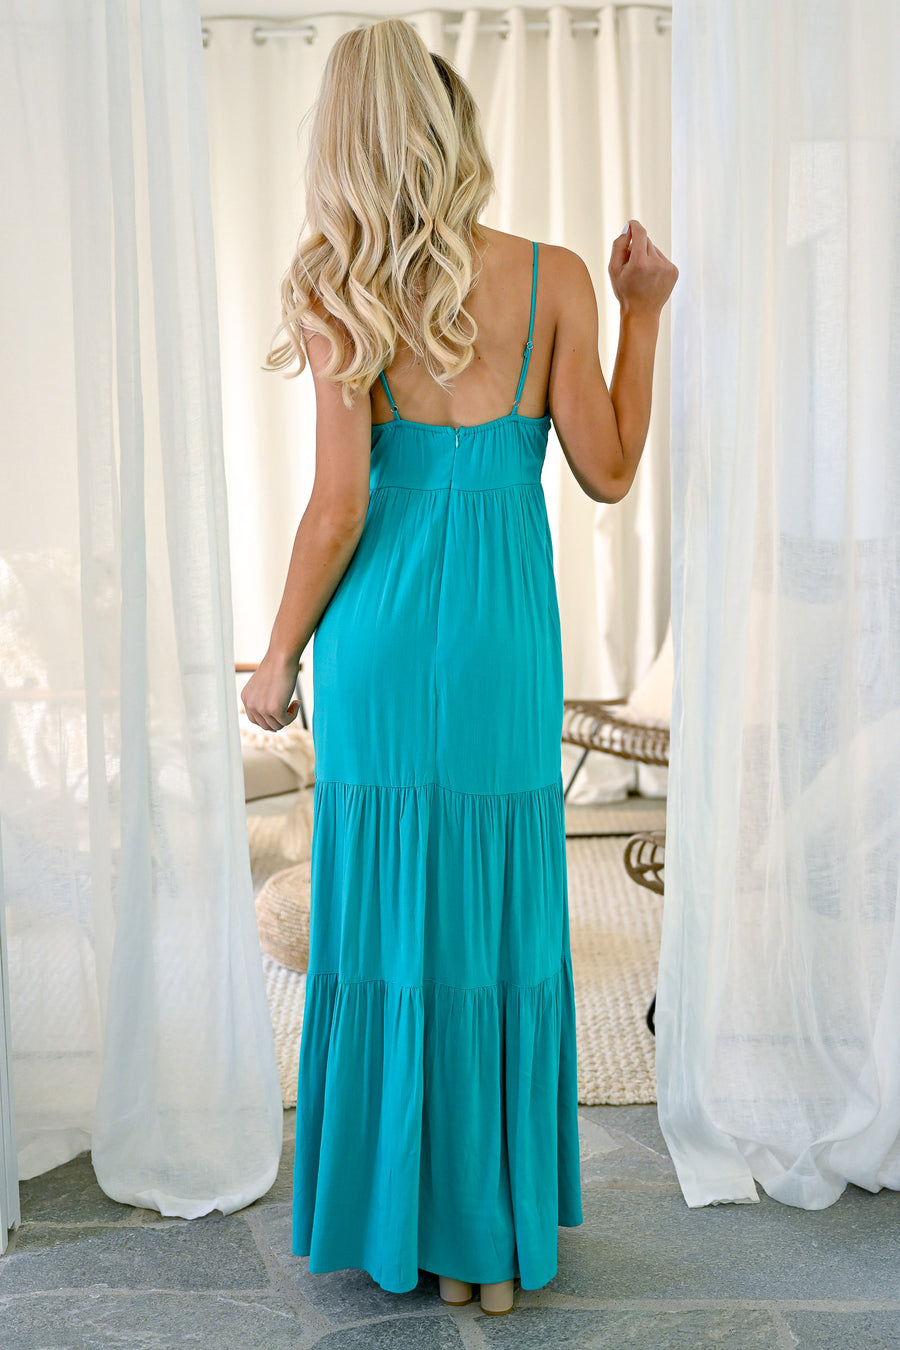 By The Shore Maxi Dress - Turquoise women's trendy long dress with bow front closet candy front